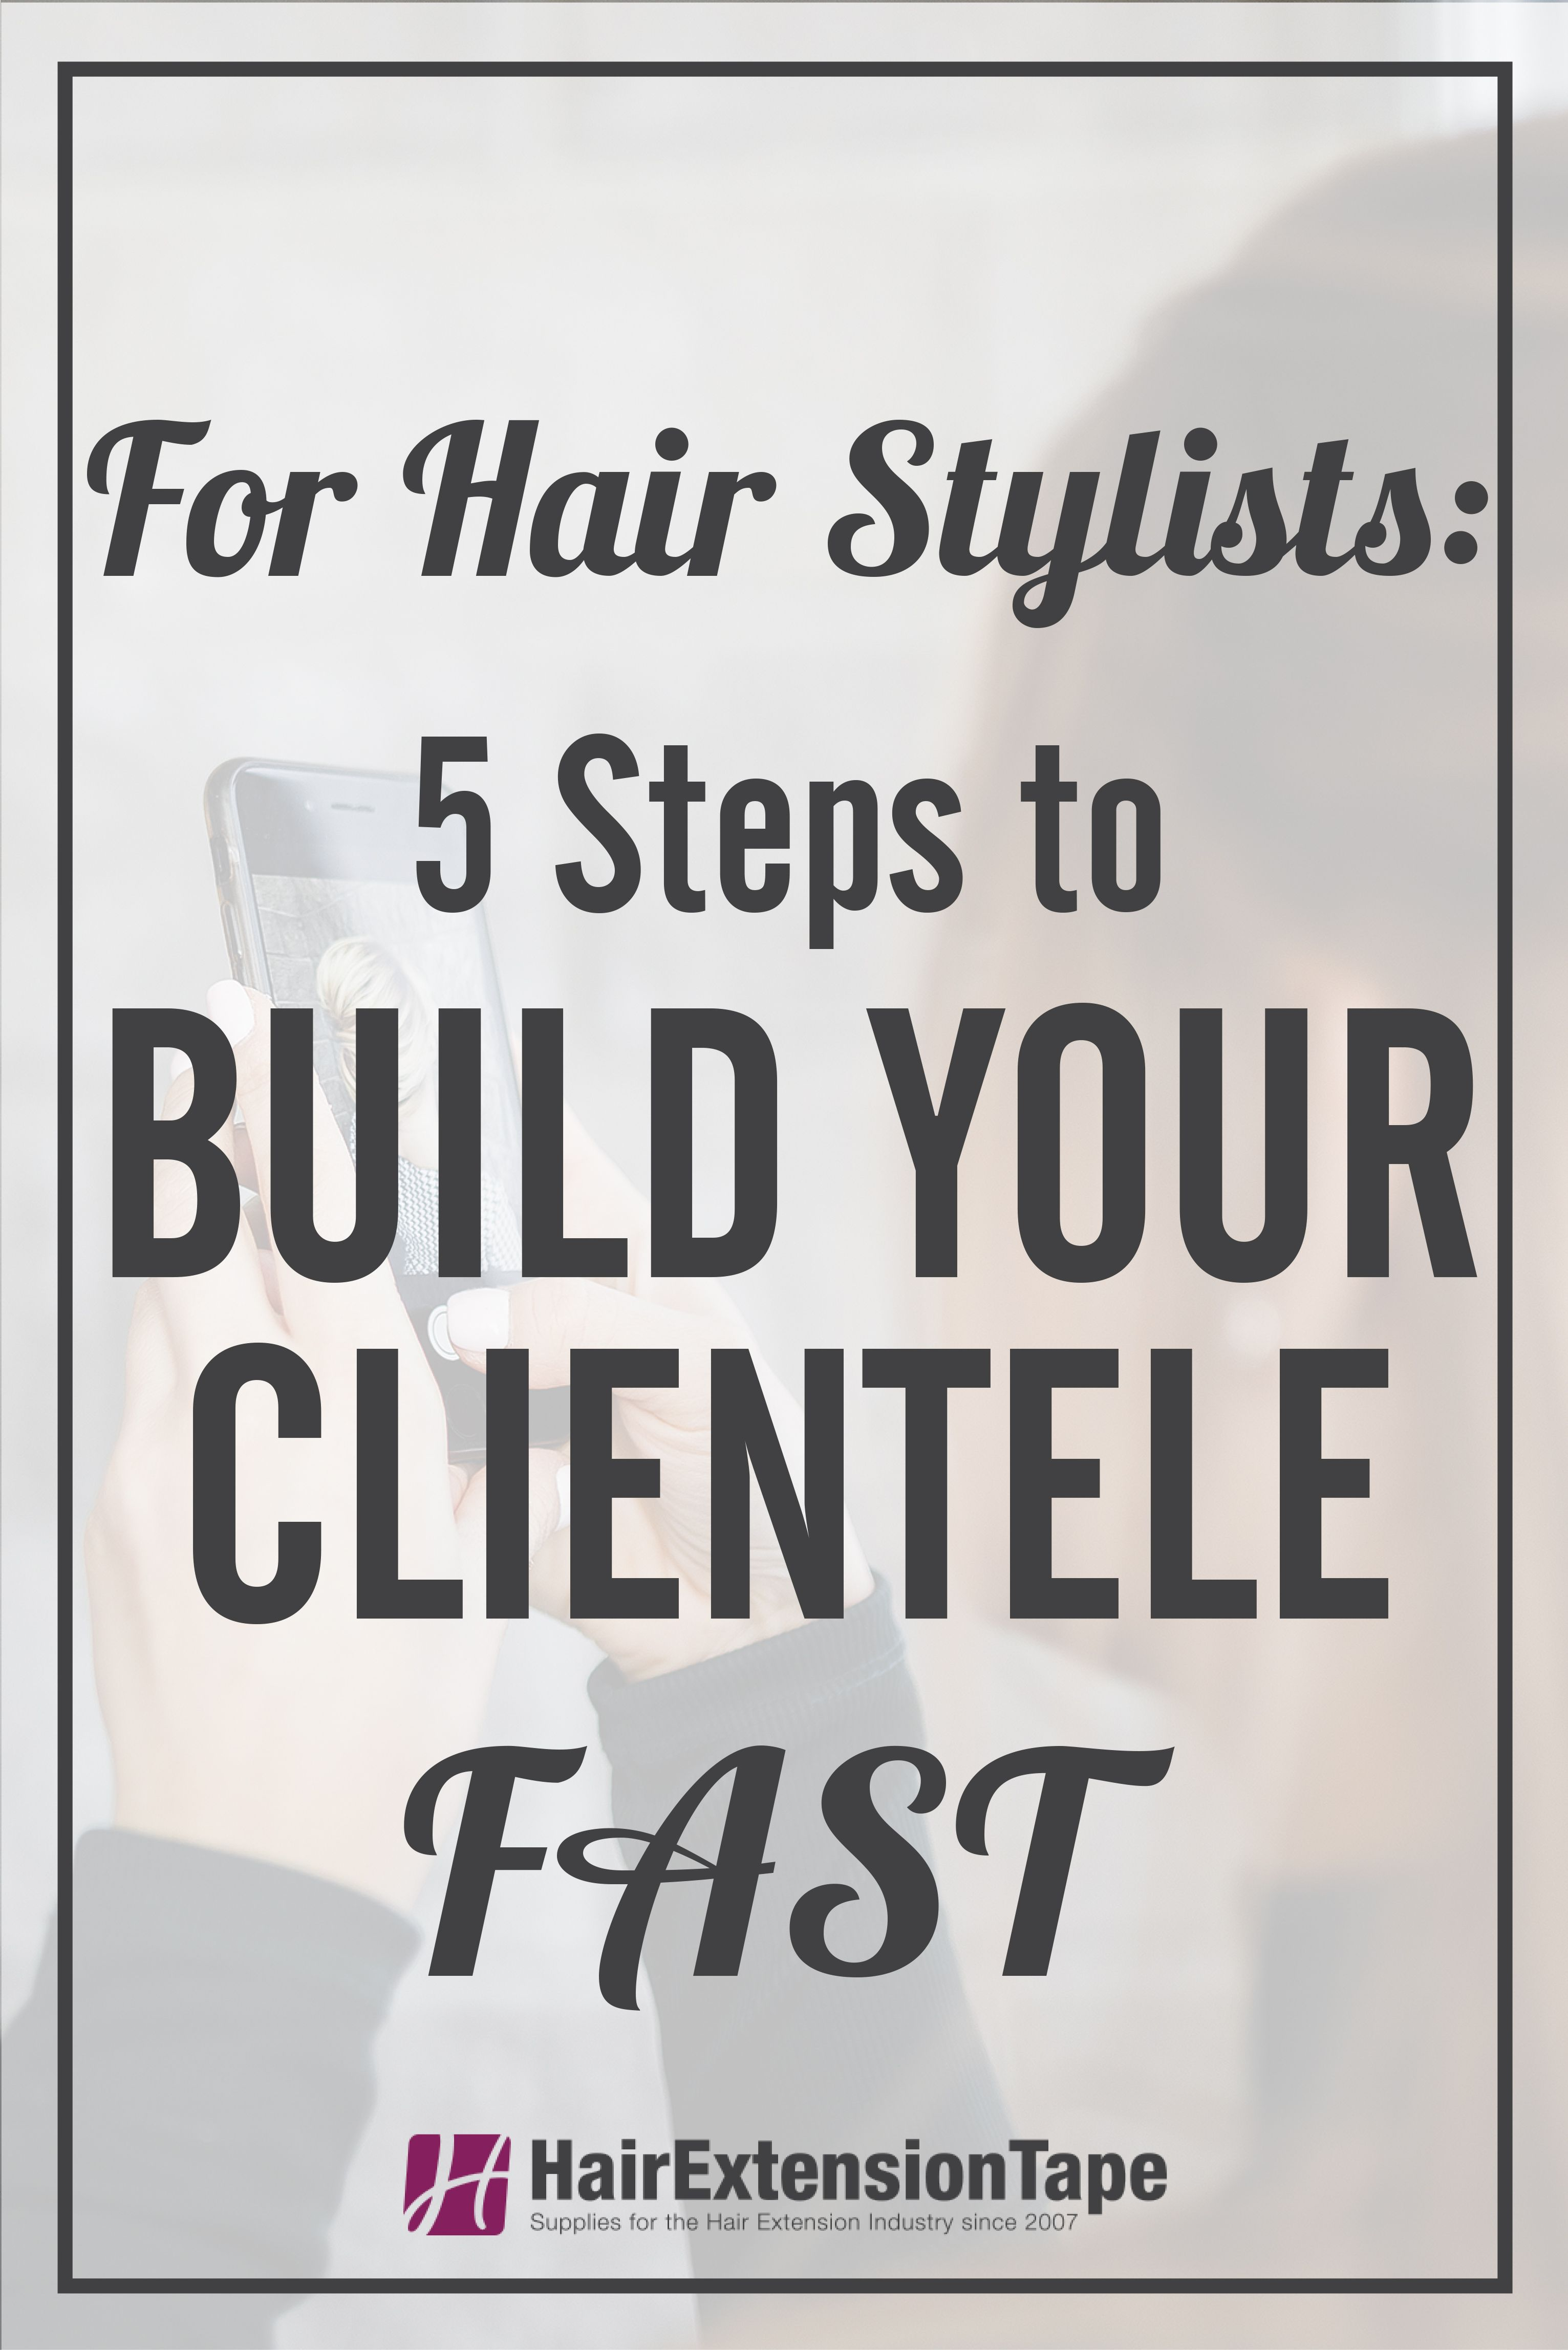 For Hair Stylists 5 Steps to Build your Clientele FAST